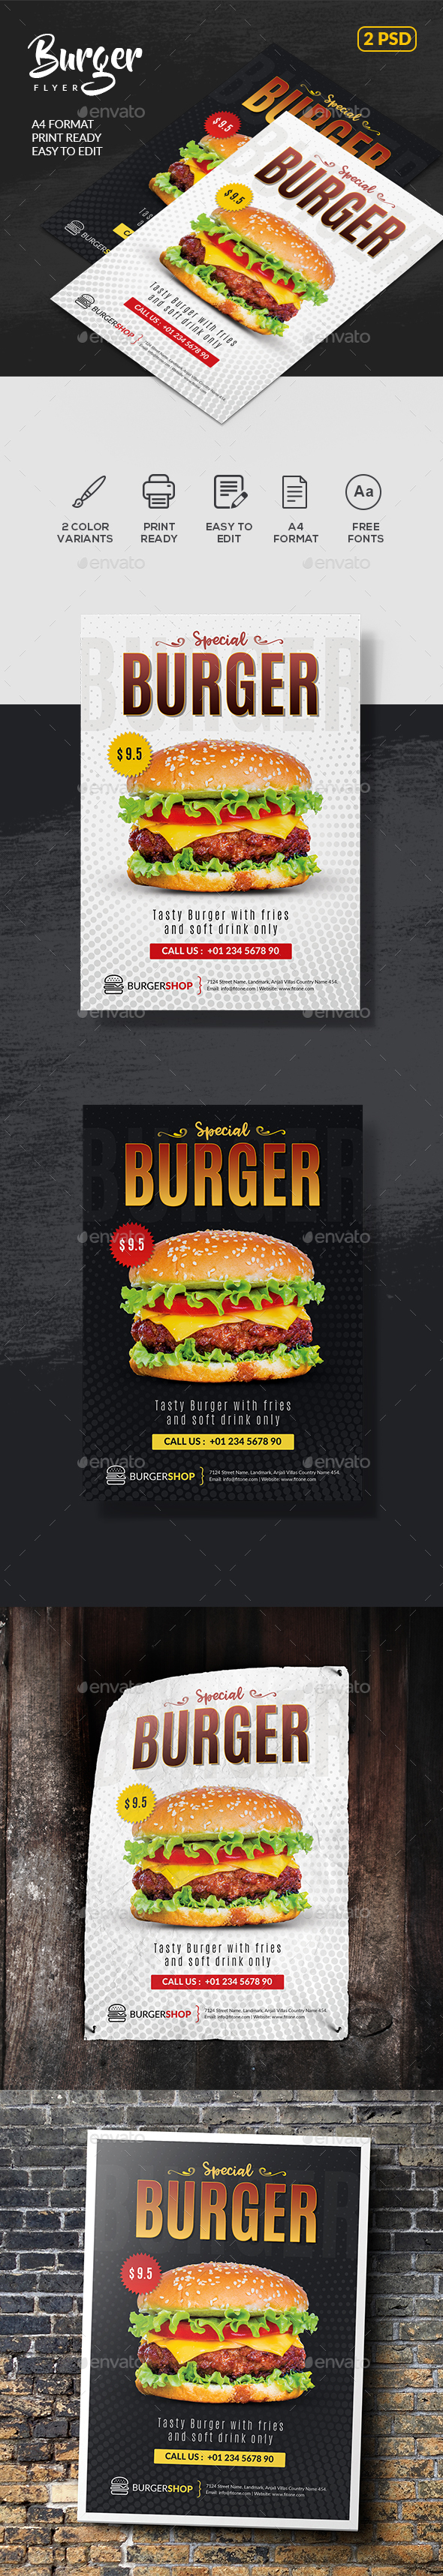 Burger Flyer Templates - Restaurant Flyers